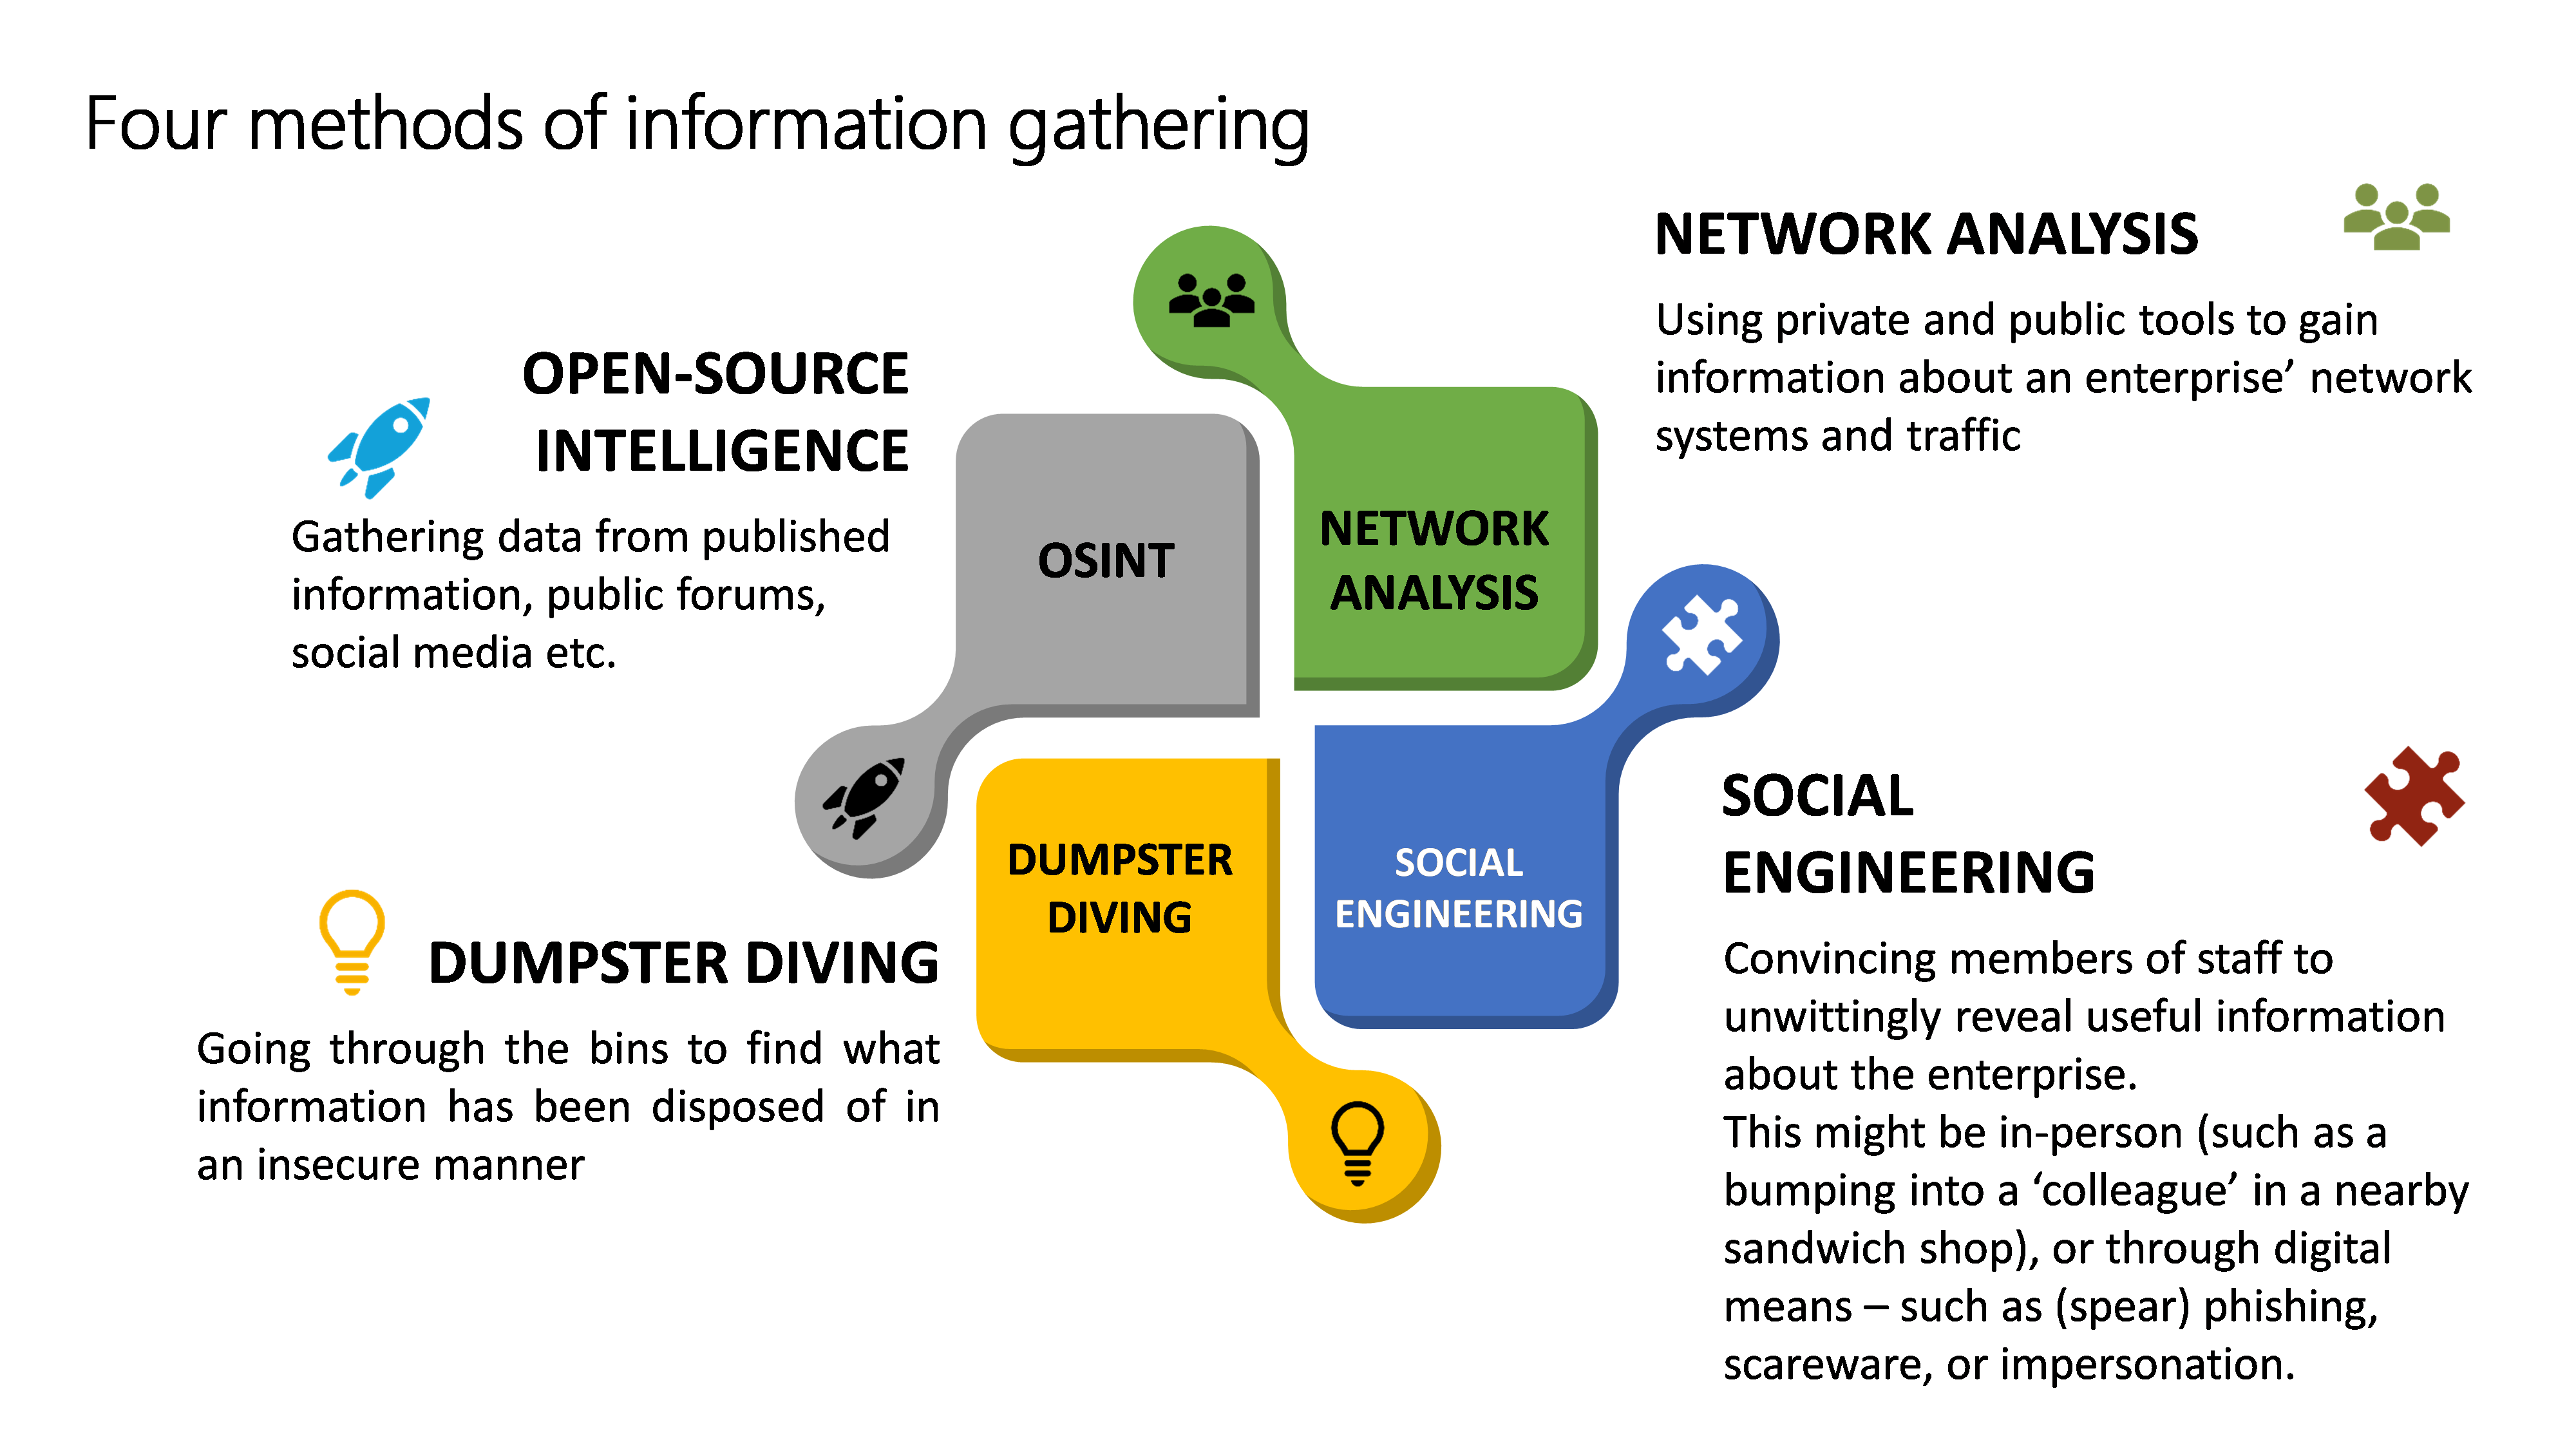 4 methods of gathering information